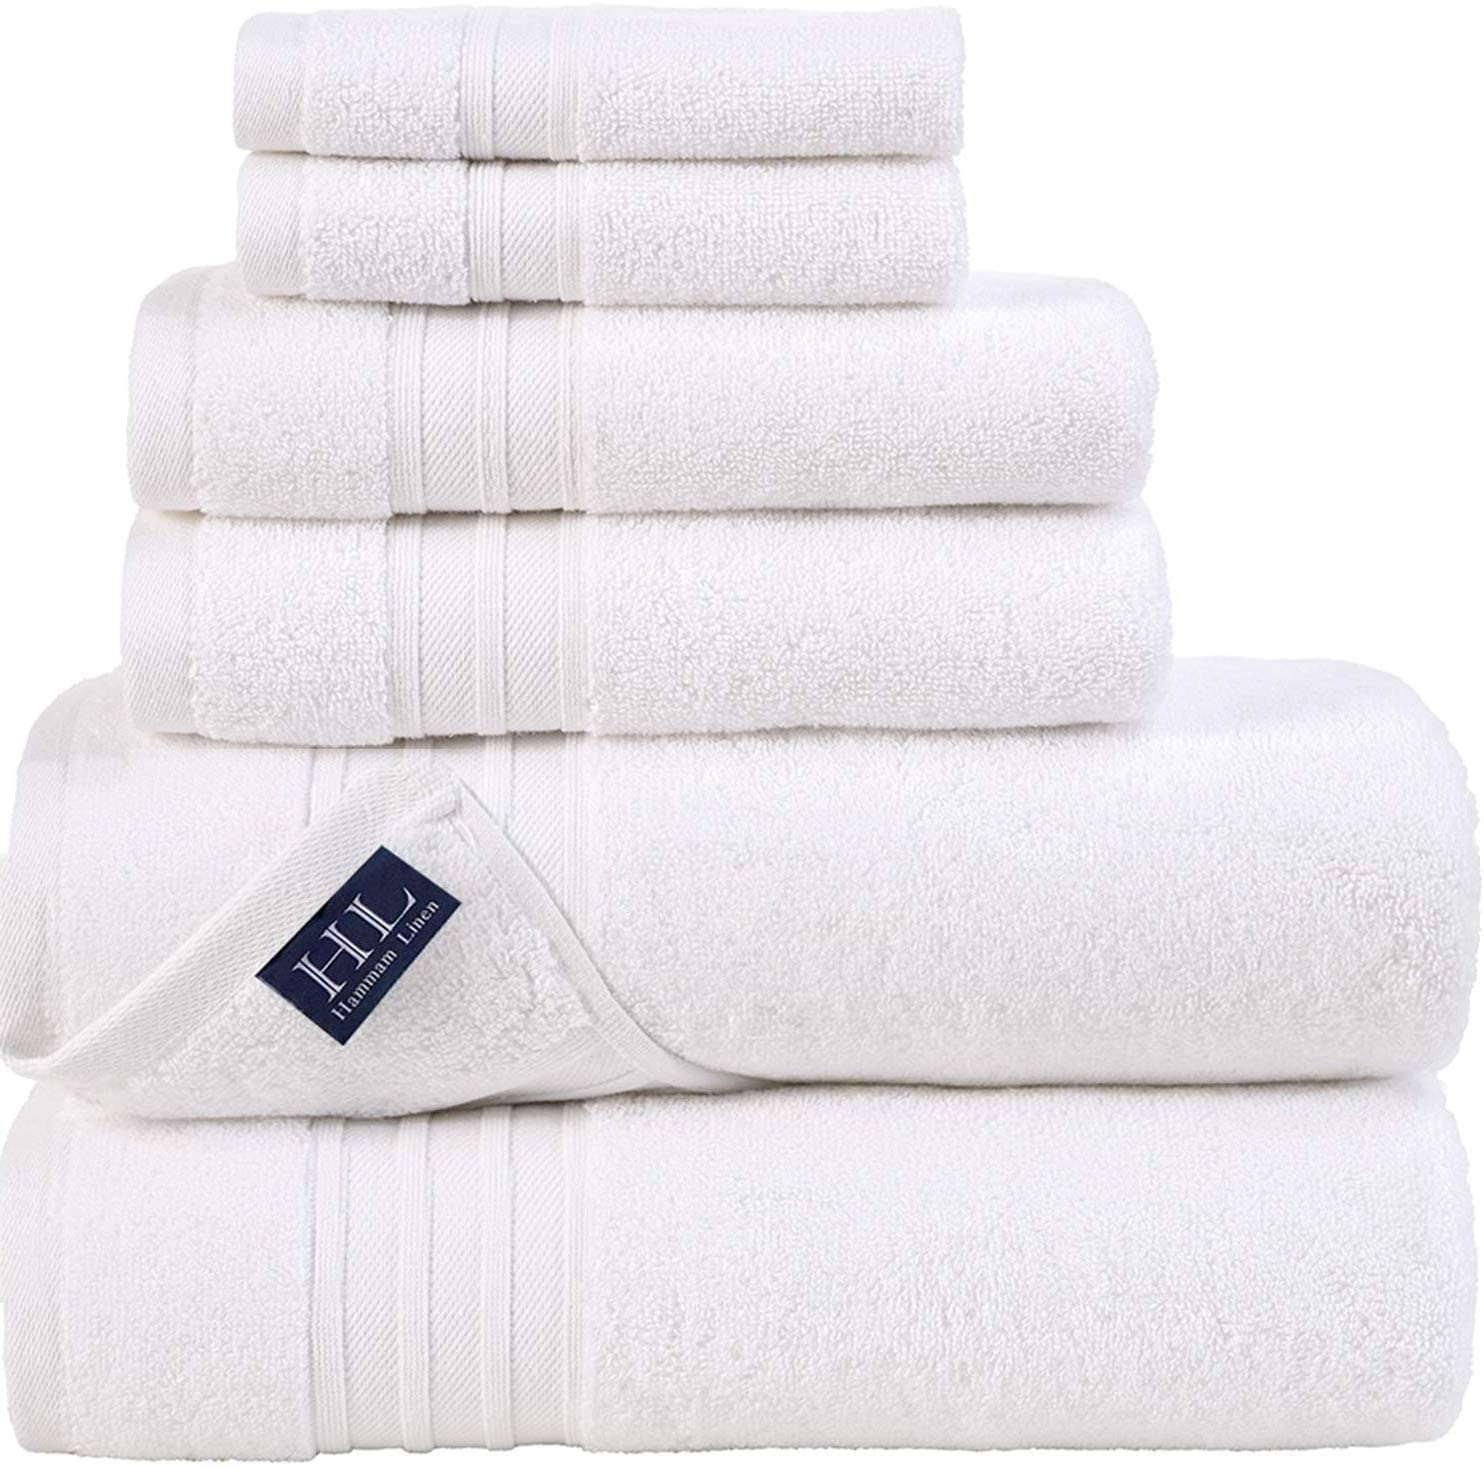 bridal-shower-gifts-towels